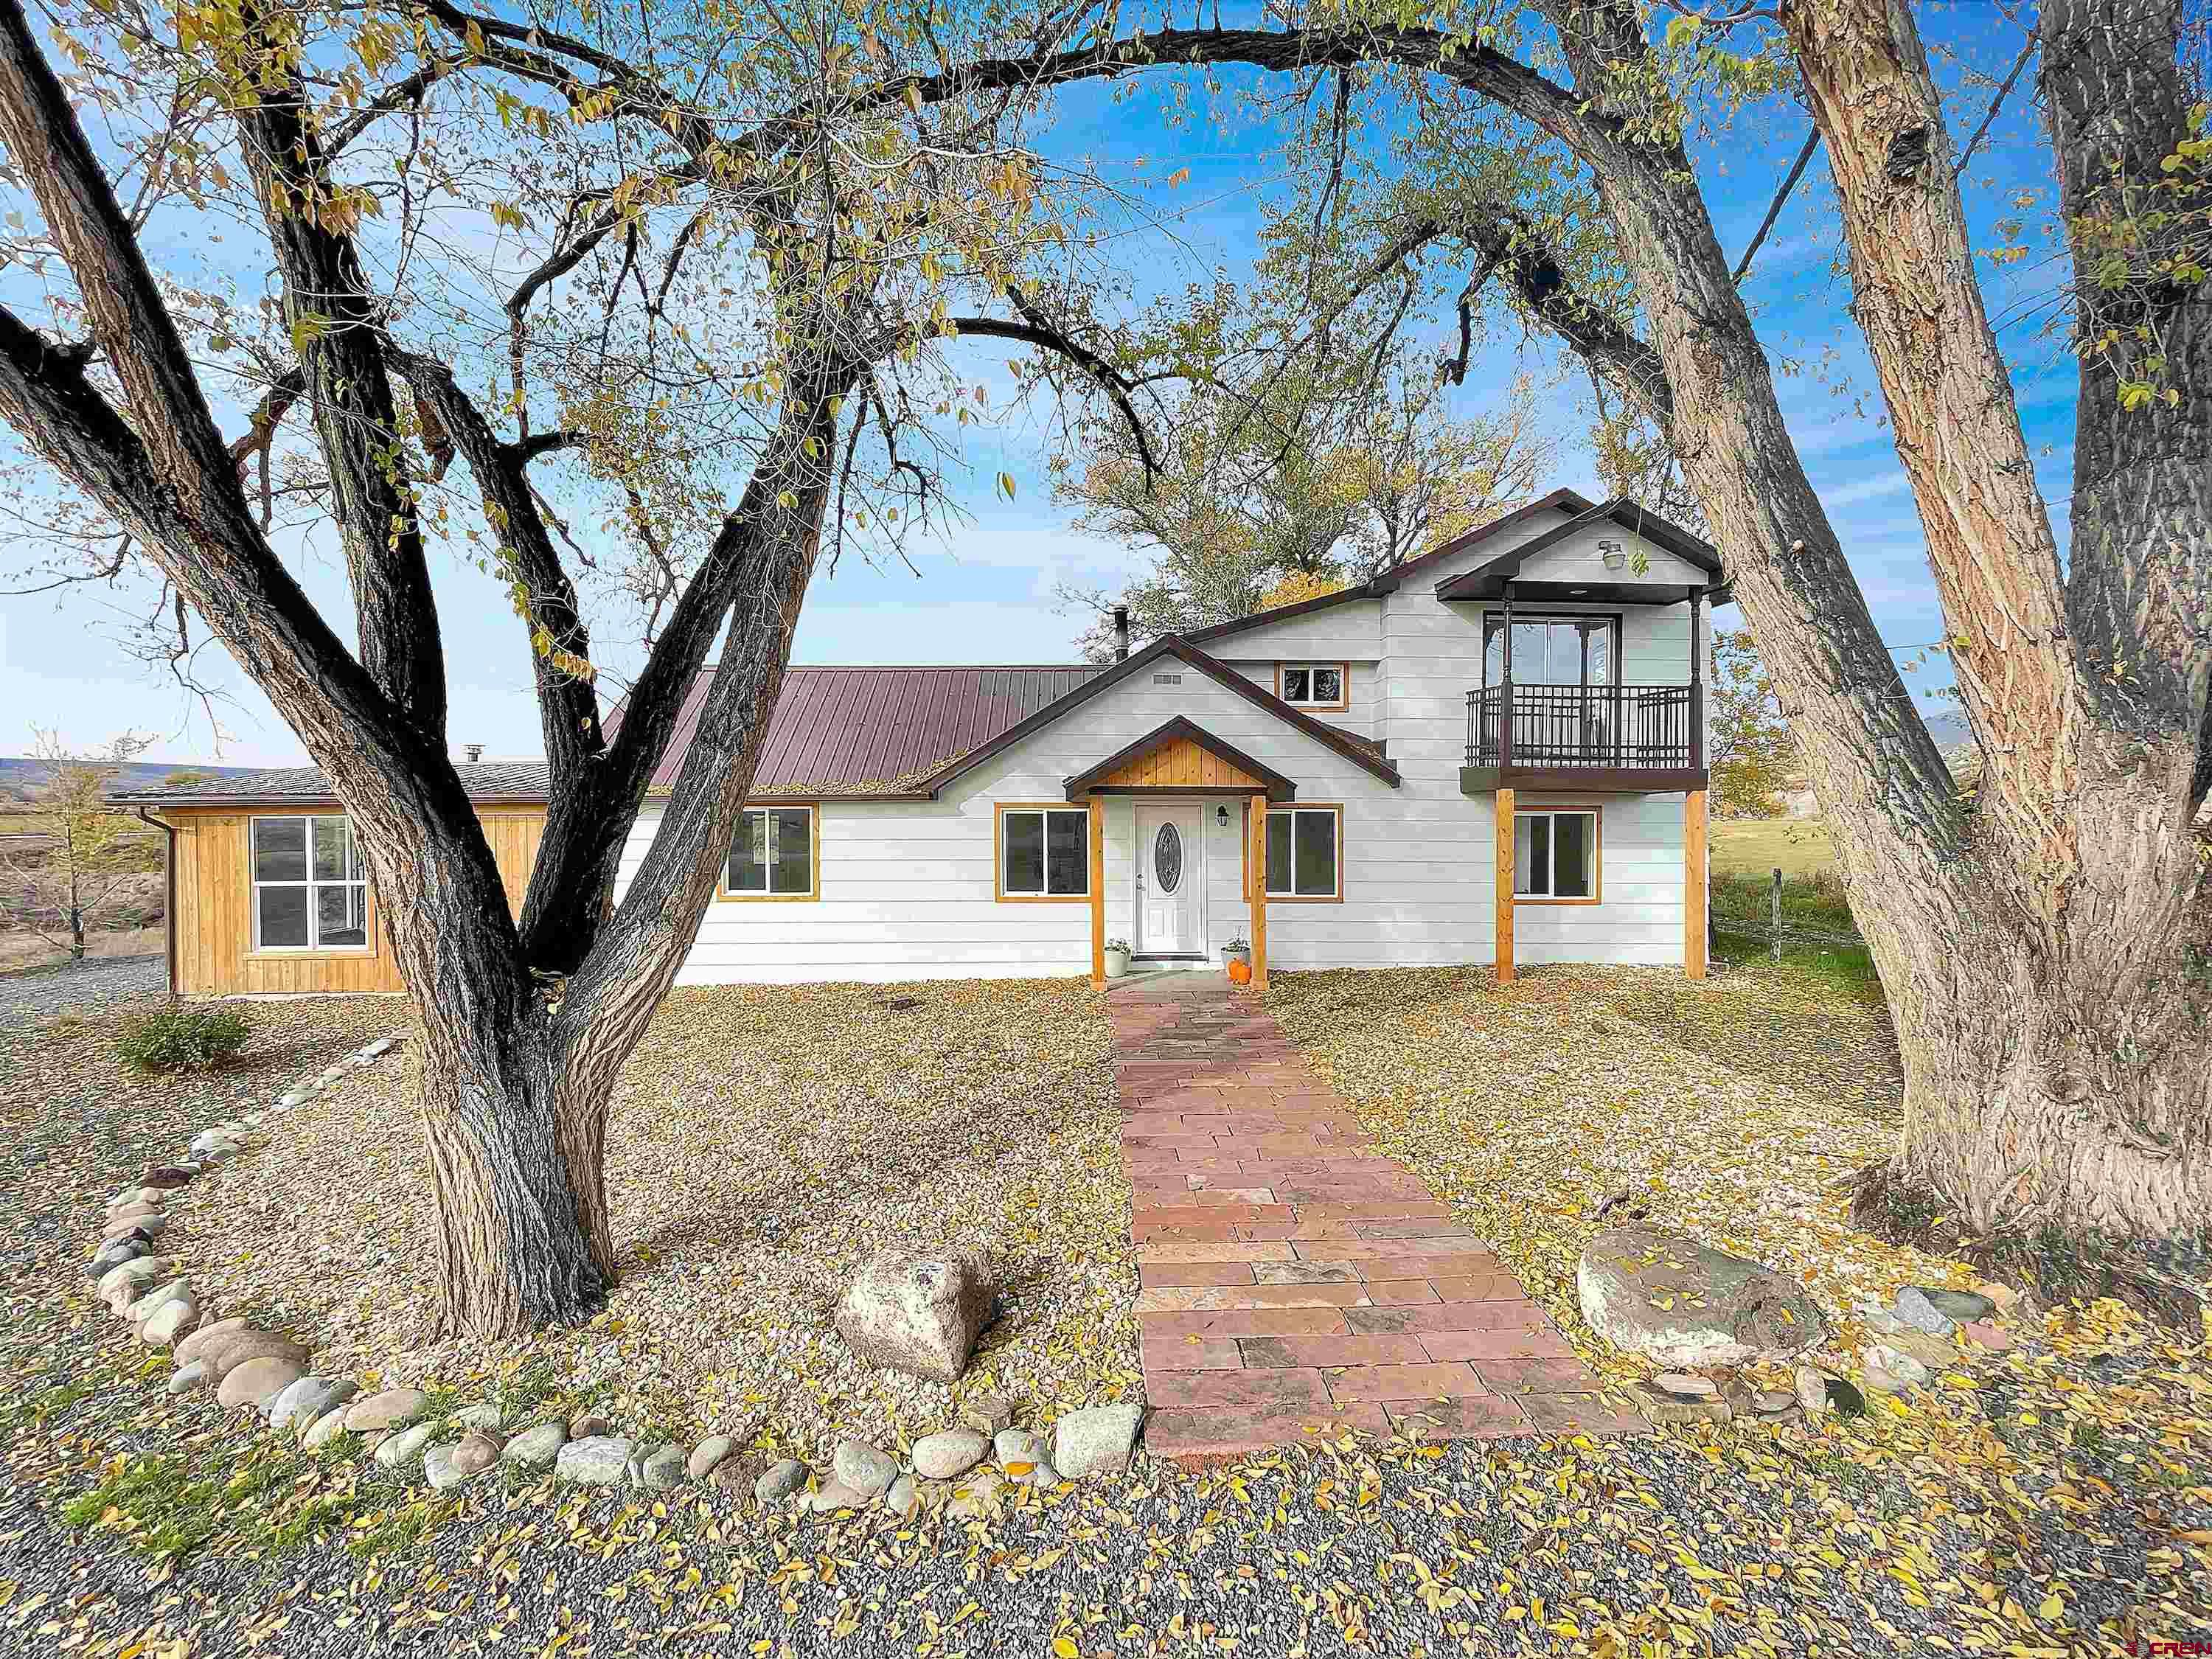 This Farmhouse Country Charmer is turn-key ready! Entire home is beautifully renovated. Property has amazing mountain/mesa views in every direction and is located minutes to Hotchkiss and Paonia. Open bright entry leads into the kitchen, dining, and family room which features a rock wall with a wood stove perfect for entertaining. 3 bedrooms on the main level including the primary suite with 2 closets and a private bath, 4th bedroom upstairs with private balcony would make a perfect home office. Additional room with its own private entrance. Relax on the deck of your private backyard listening to Cottonwood Creek at the edge of the property as it flows year round. Two sheds on concrete pads for extra storage. Additional graveled parking in the rear.  Xeriscaped front yard, inviting stone walkway, terraced garden area. Full renovation includes new black stainless kitchen appliances, farmhouse sink, quartz countertops, hot water heater, new flooring, windows, doors, all new electric heaters and upgraded electric service. Septic has been pumped and inspected. Includes highly sought after Bone Mesa water tap. High speed internet available (elevate).